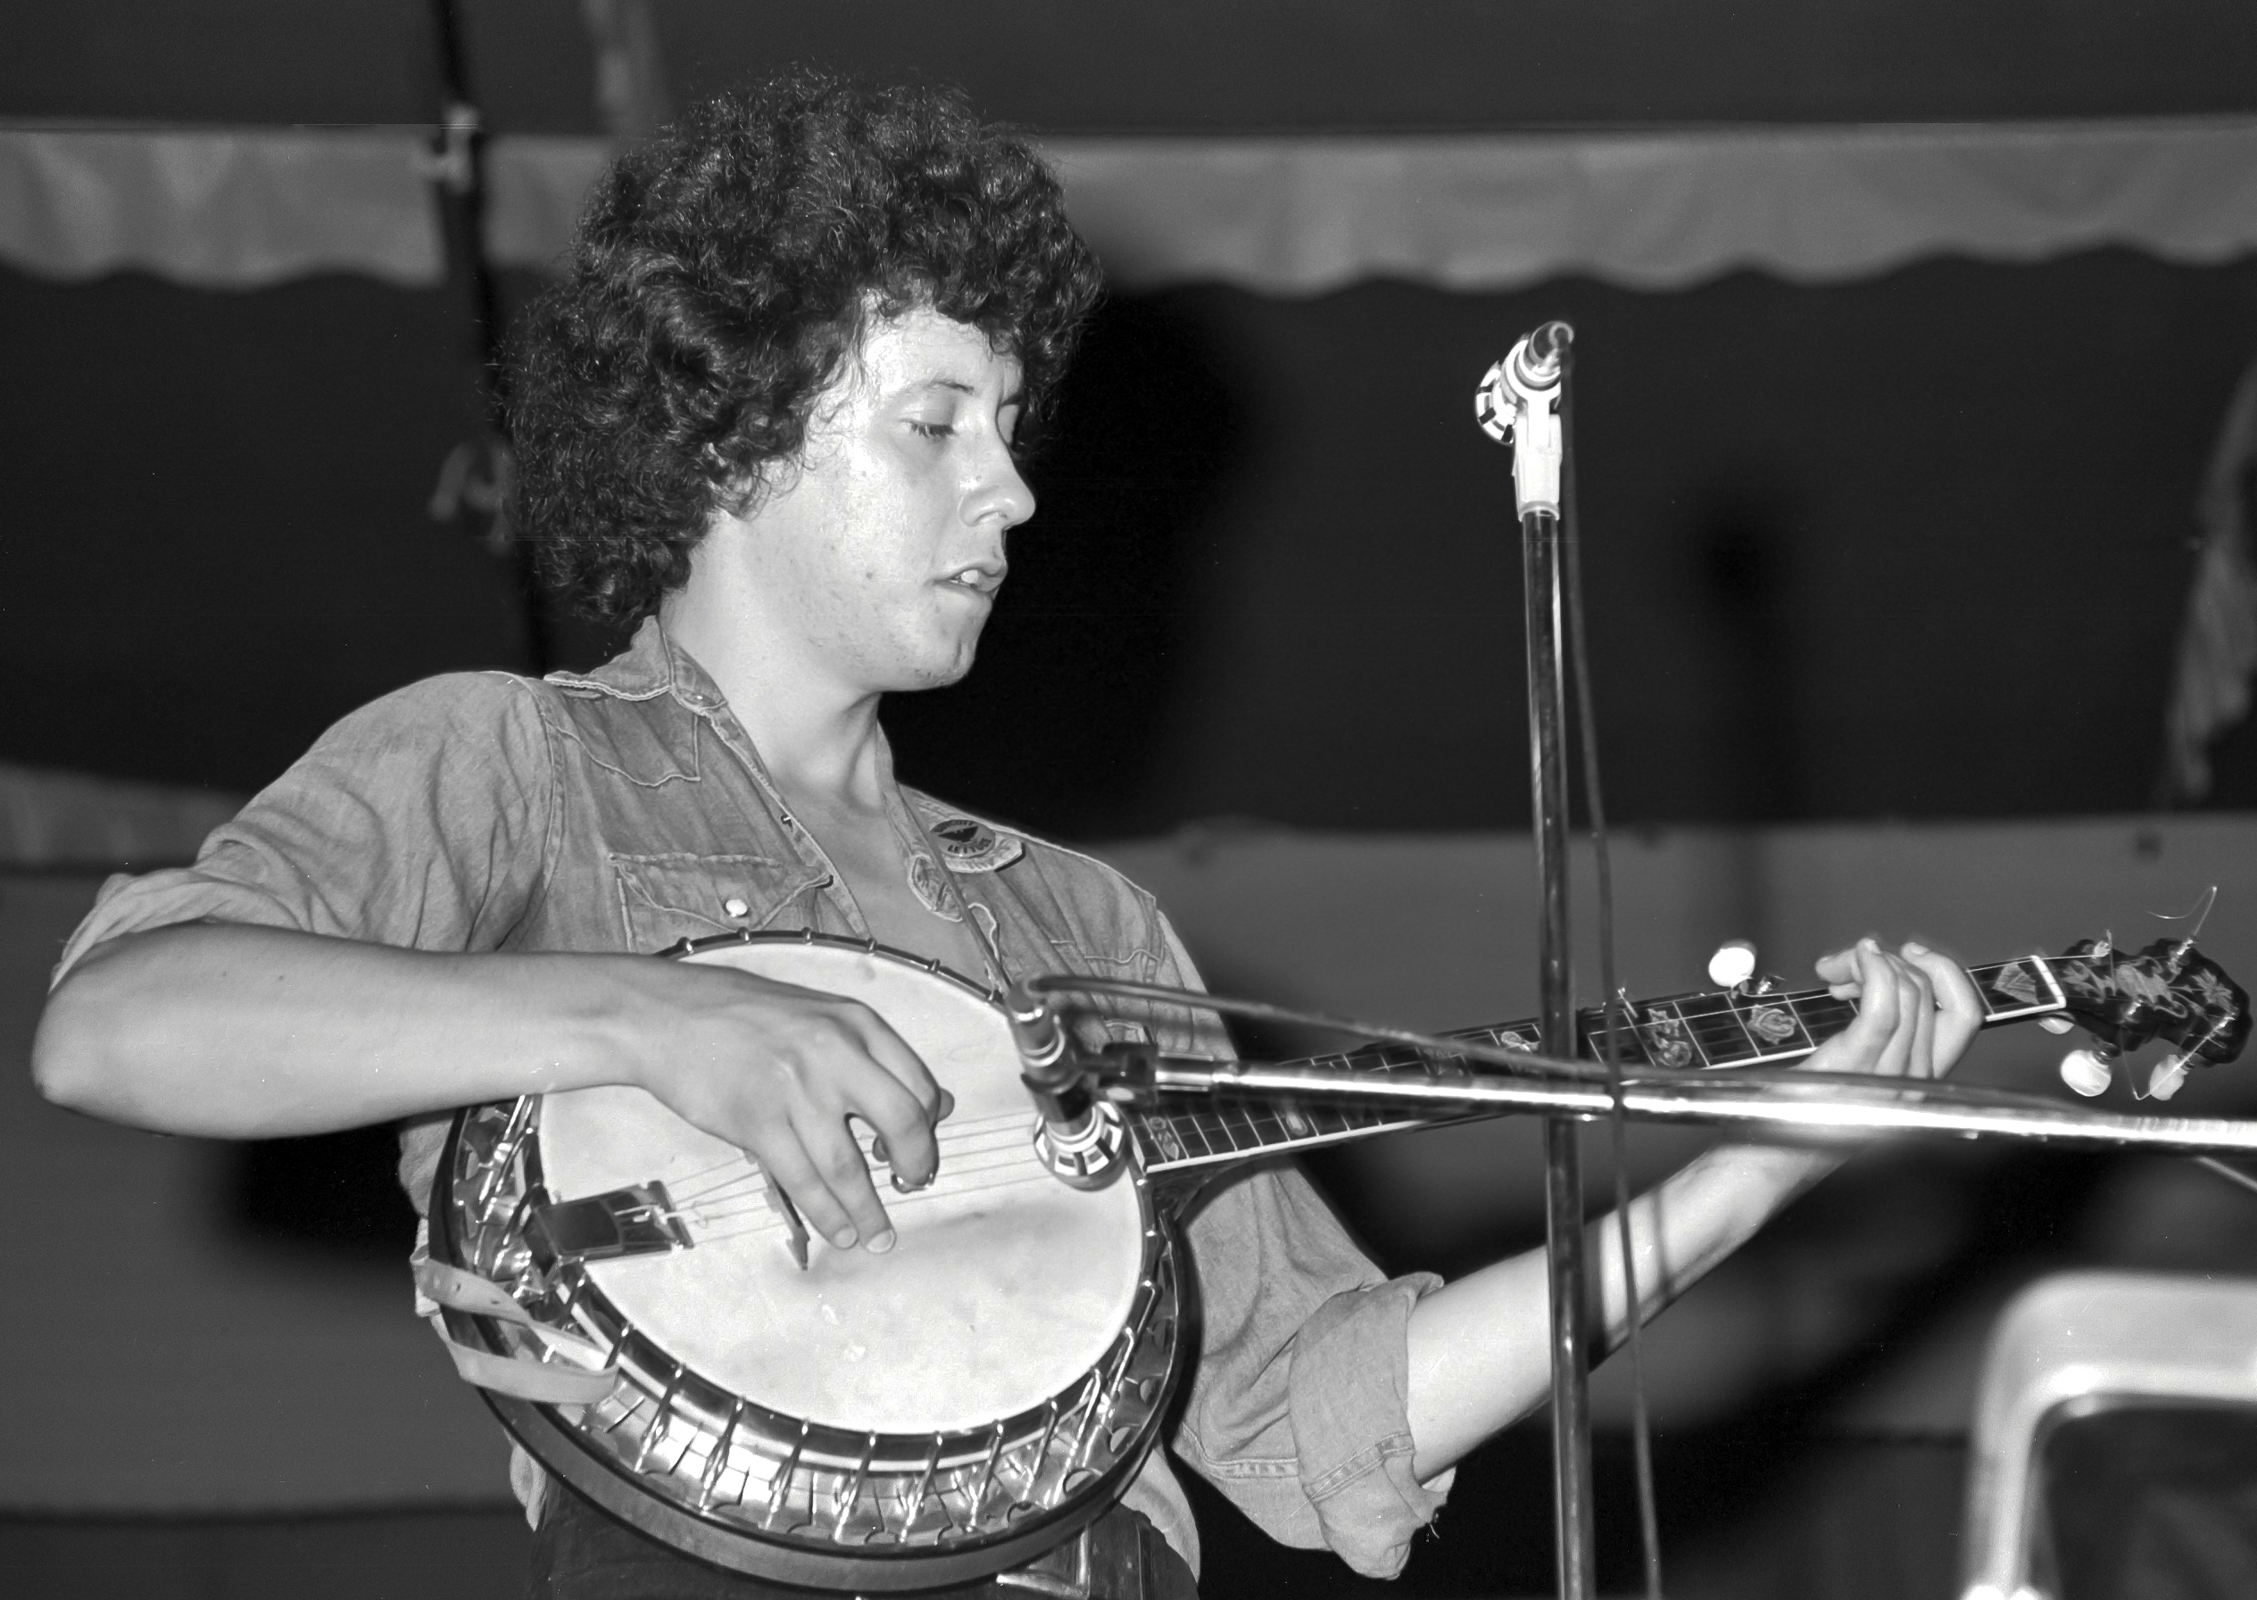 Arlo Guthrie 1972 42012 07 154 of 9 2